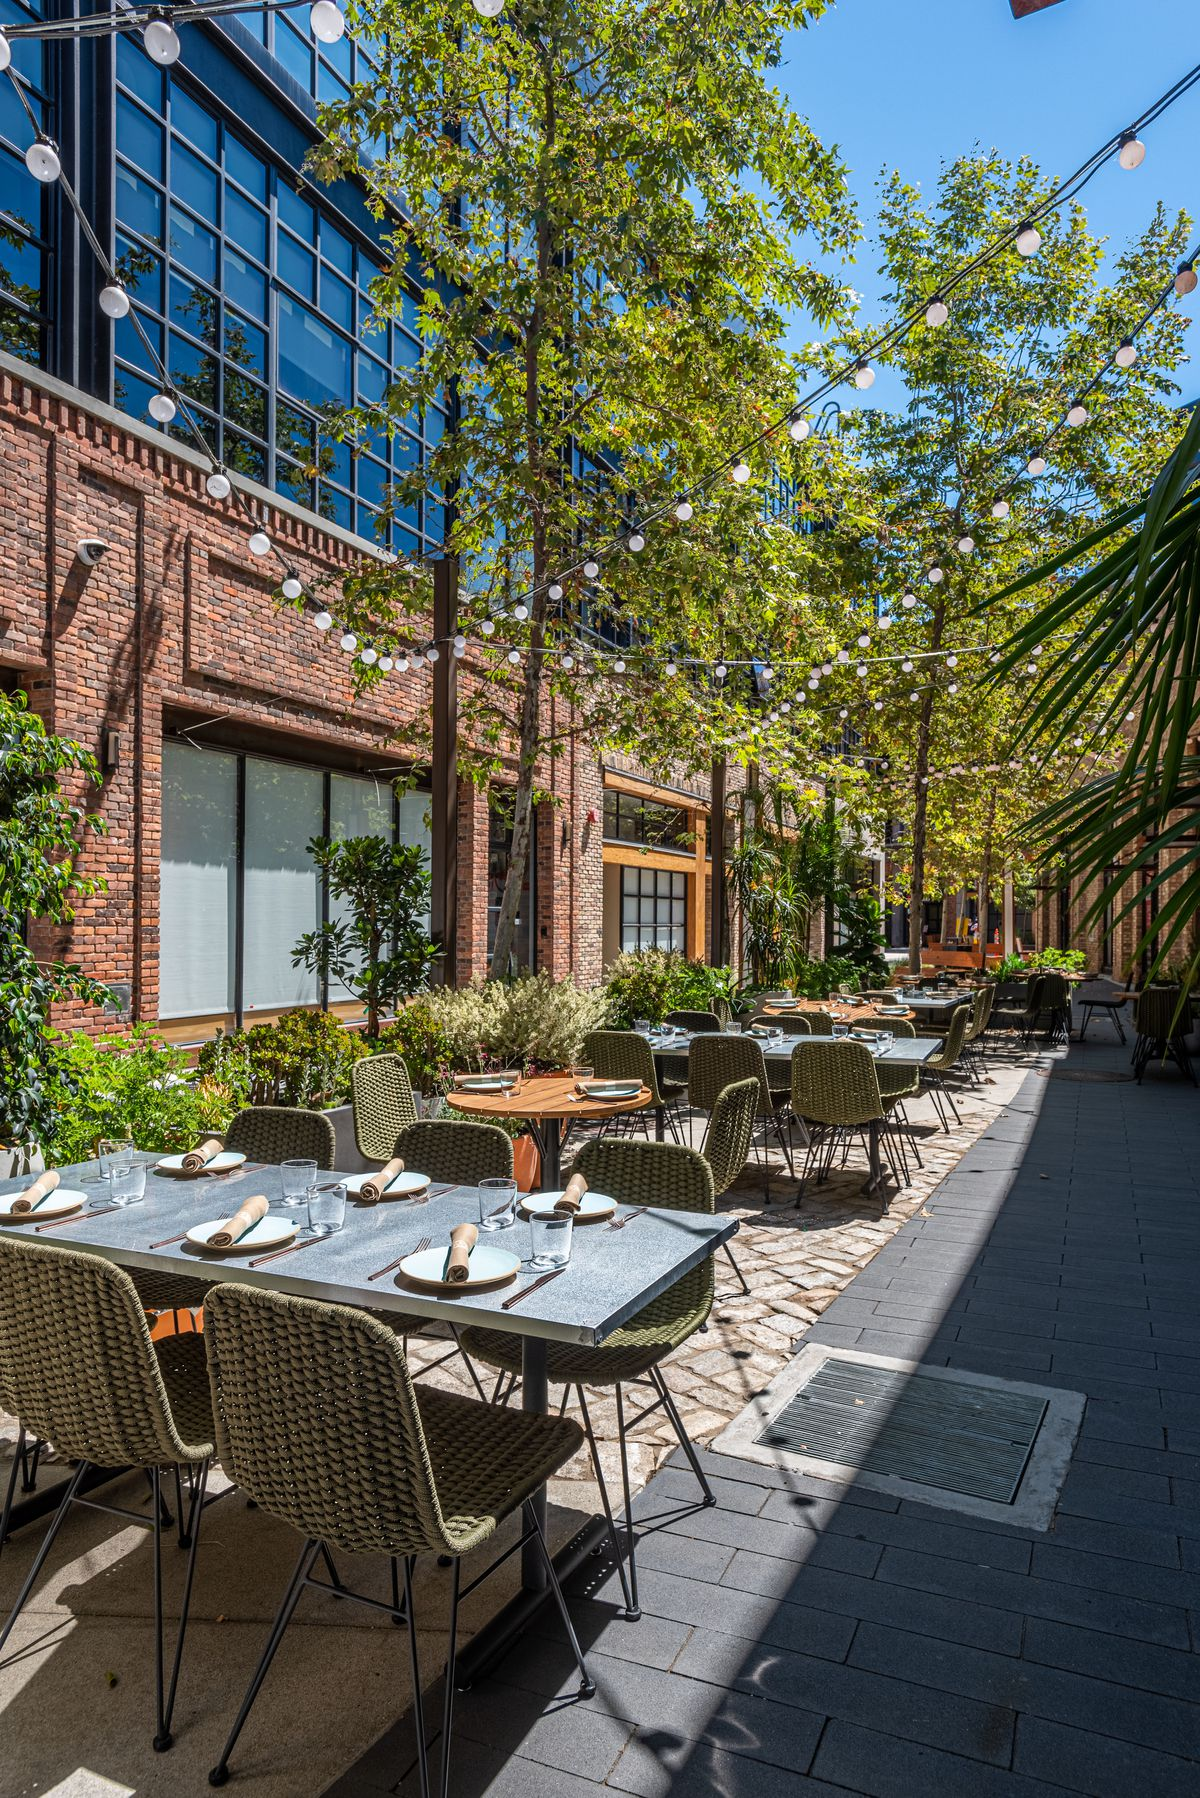 Outdoor patio seating at a new restaurant lined with brick.